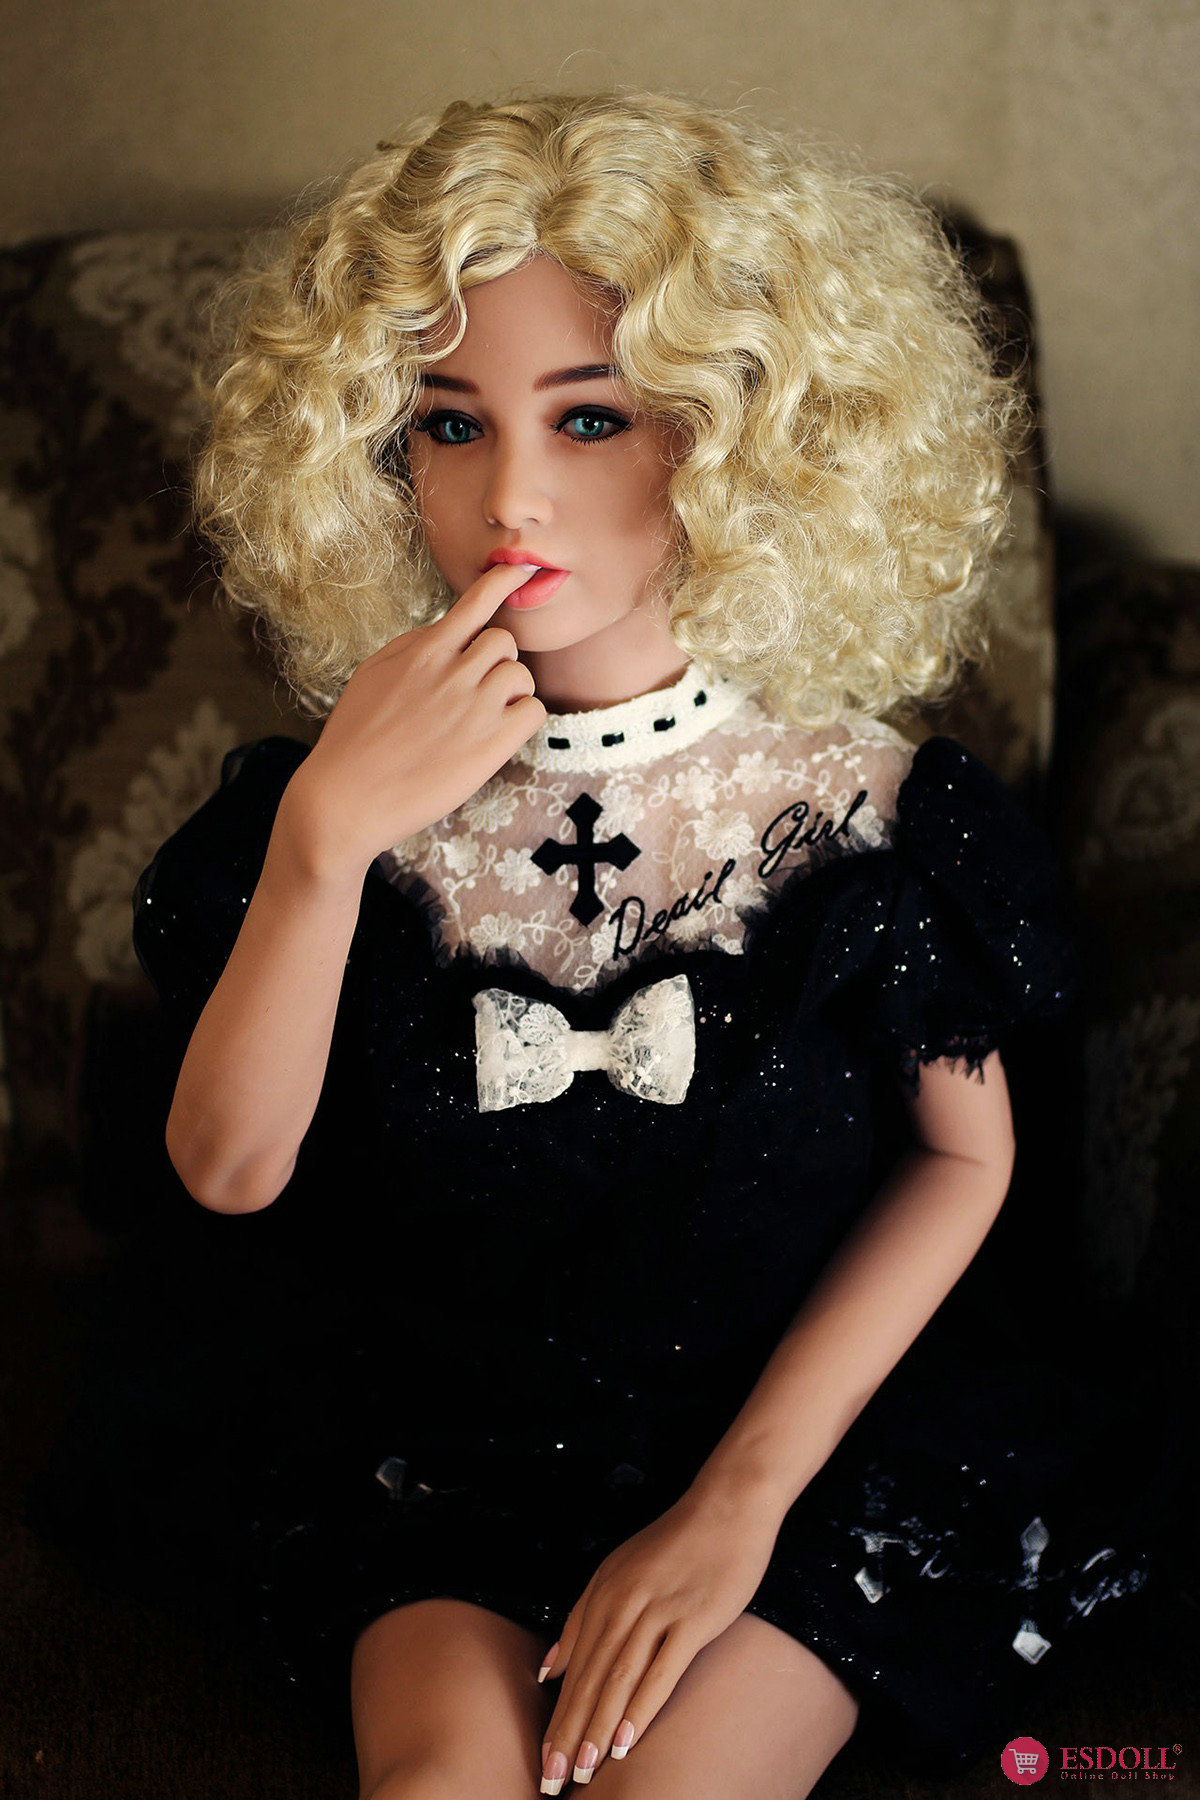 156cm 5.12ft Lily sex doll - 9